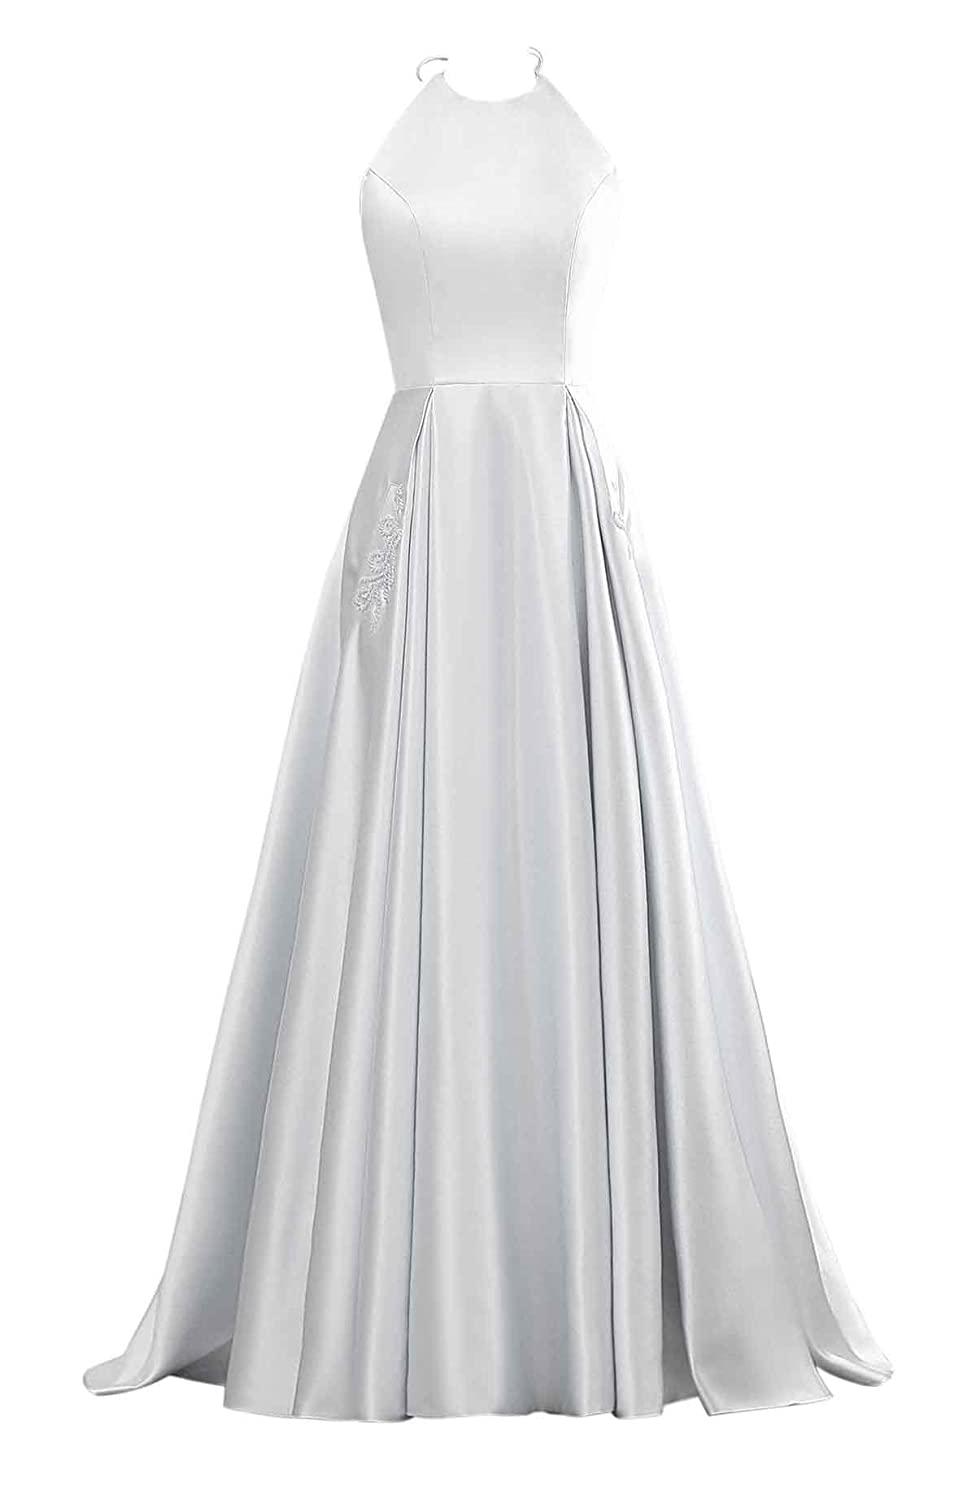 White Changuan Halter Aline Satin Evening Prom Dresses for Women Beaded Long Formal Gown with Pockets